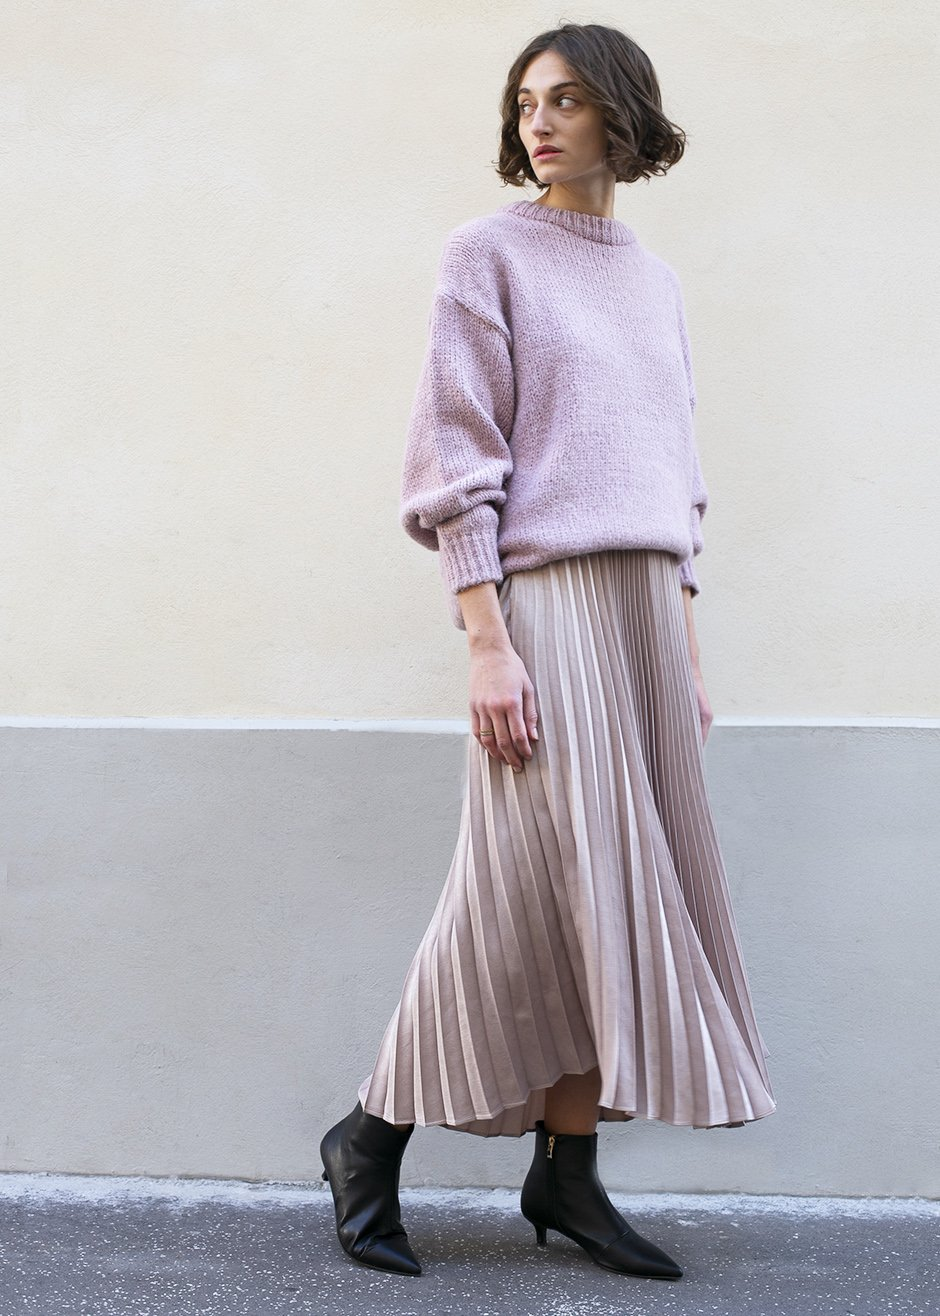 The Frankie Shop  27 Midi Skirts You Need in Your Closet ASAP Frankie Shop Shimmer Pleated